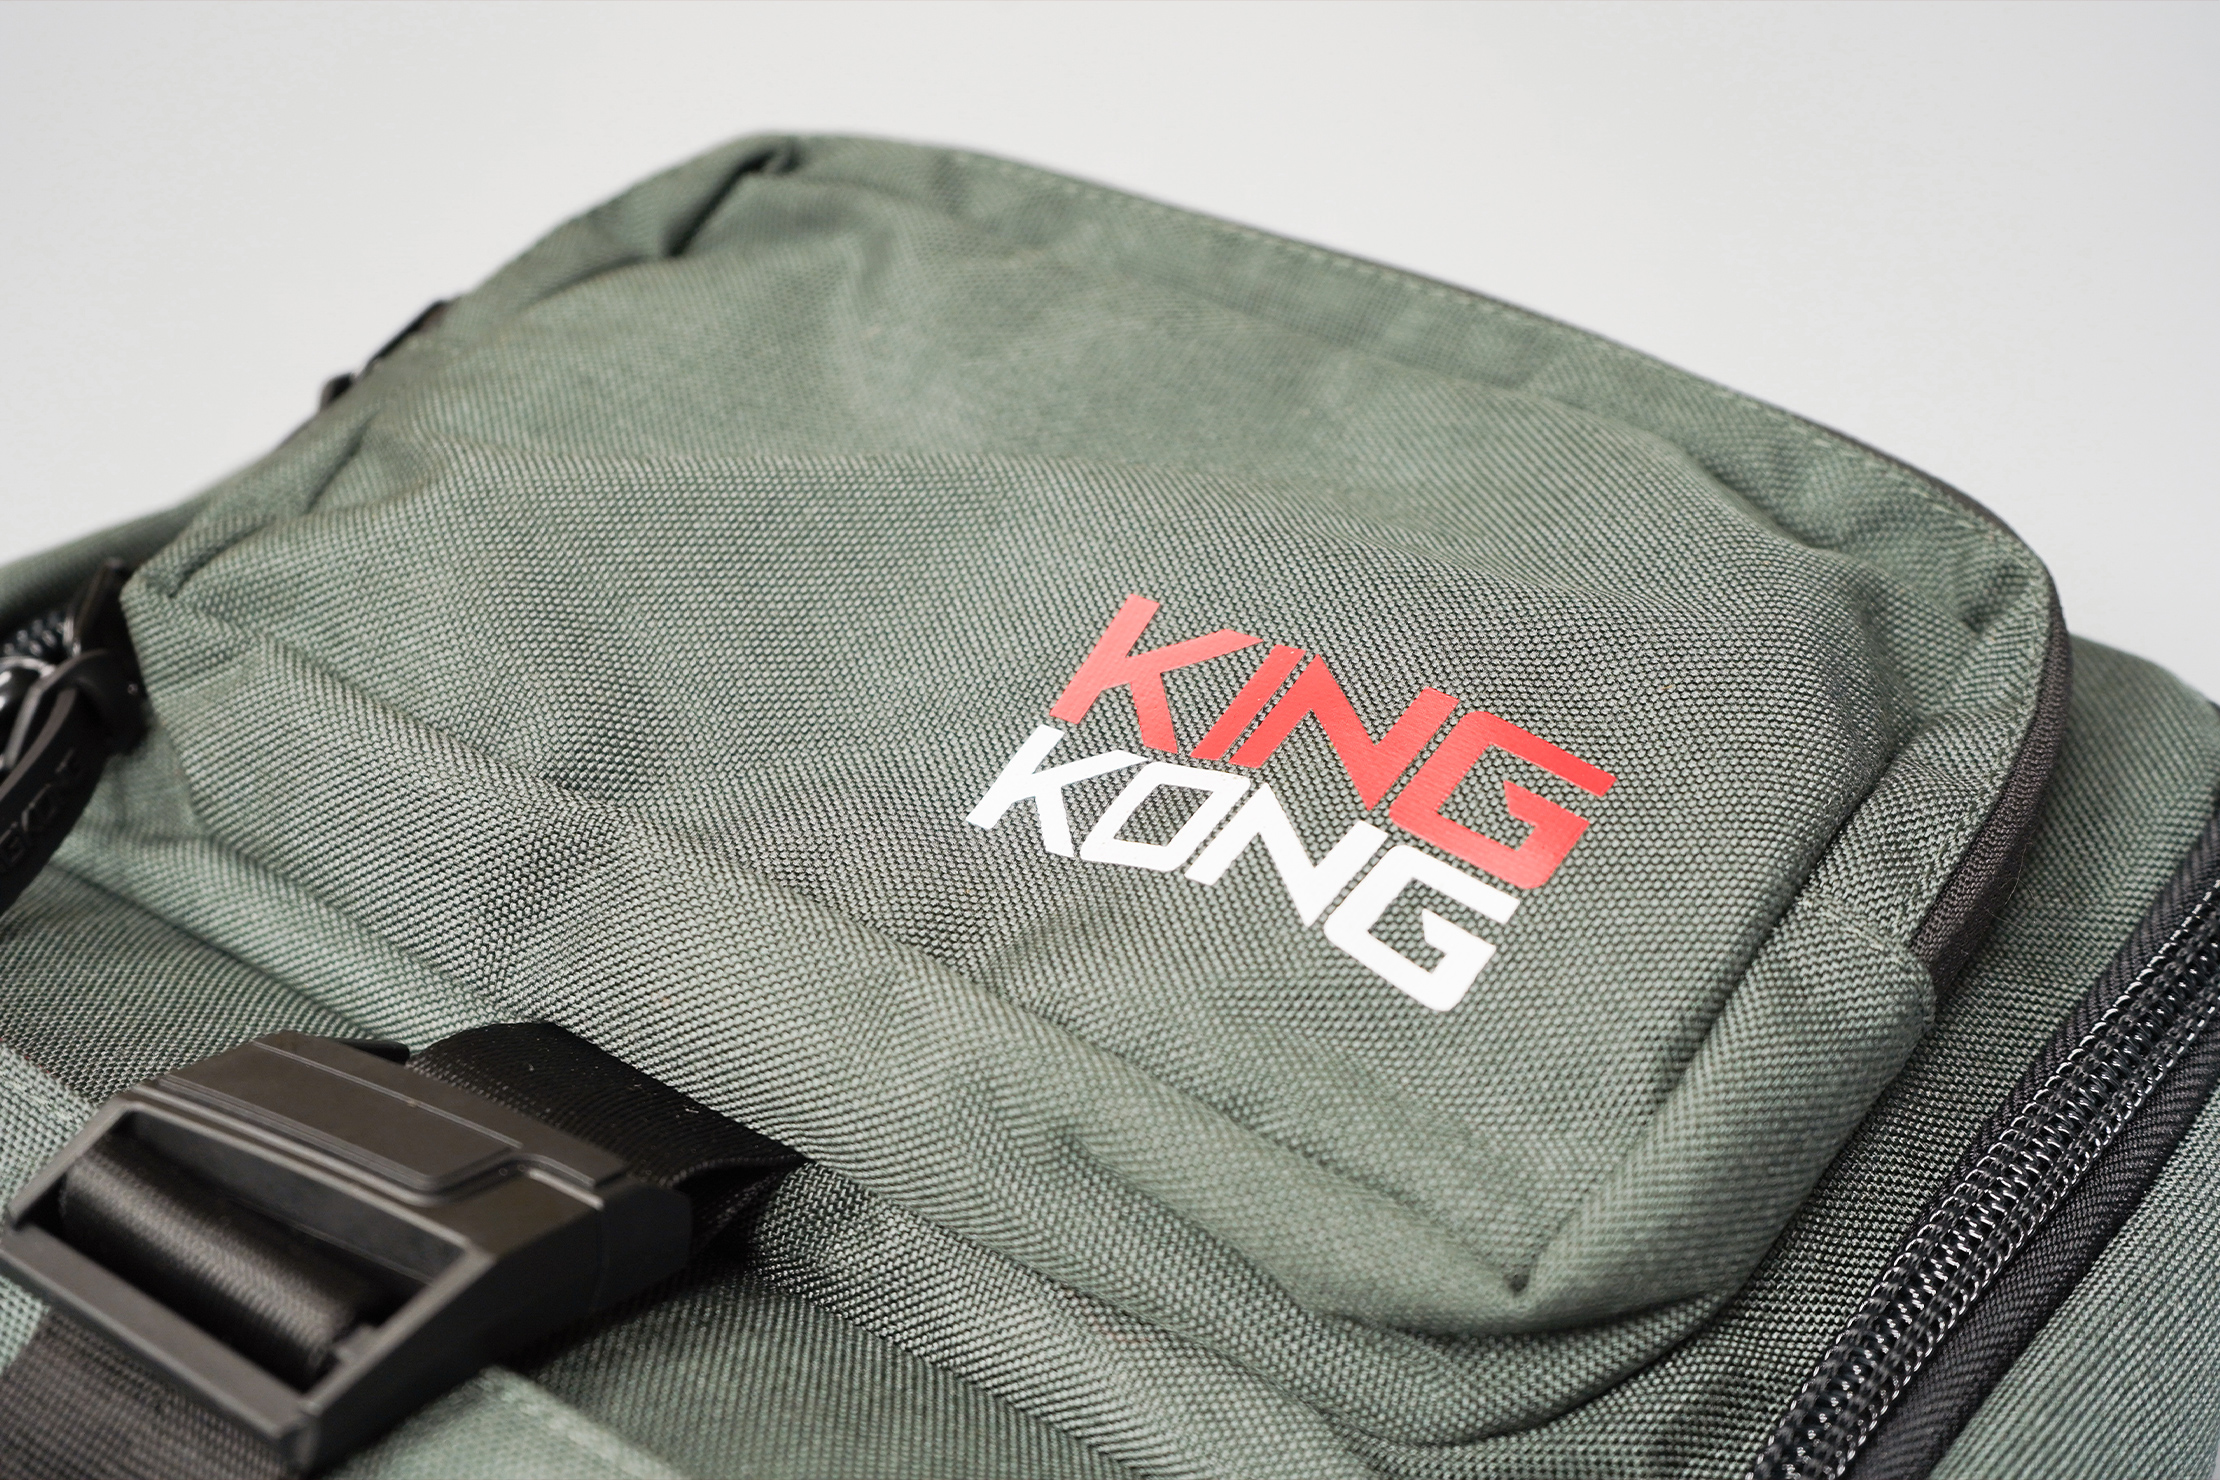 King Kong Apparel PLUS26 Backpack Material and Logo